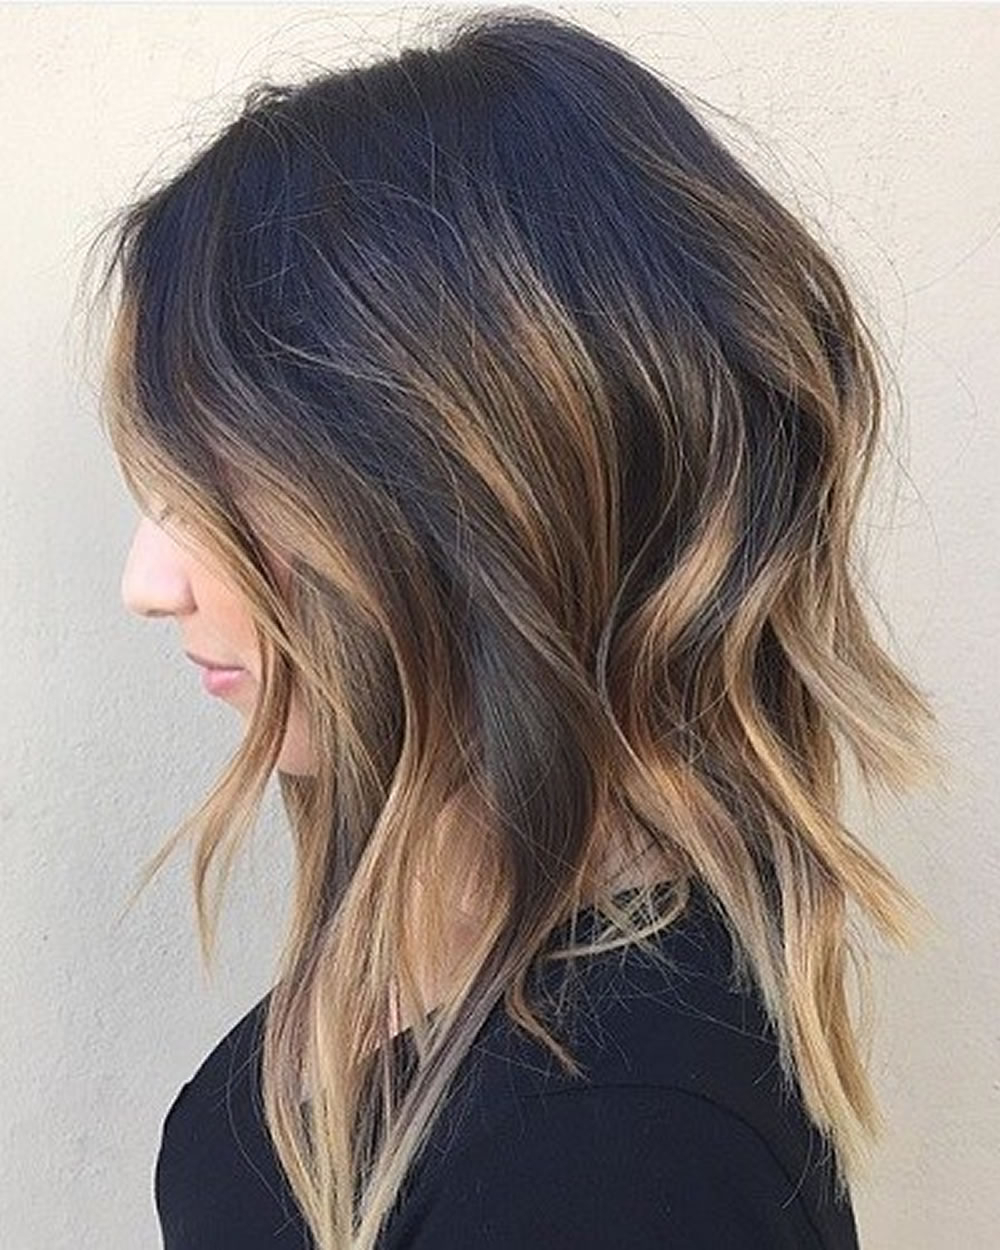 Asymmetrical Short Haircuts With Balayage Highlights 2018 – 2019 With Short Hairstyles With Balayage (Gallery 12 of 25)